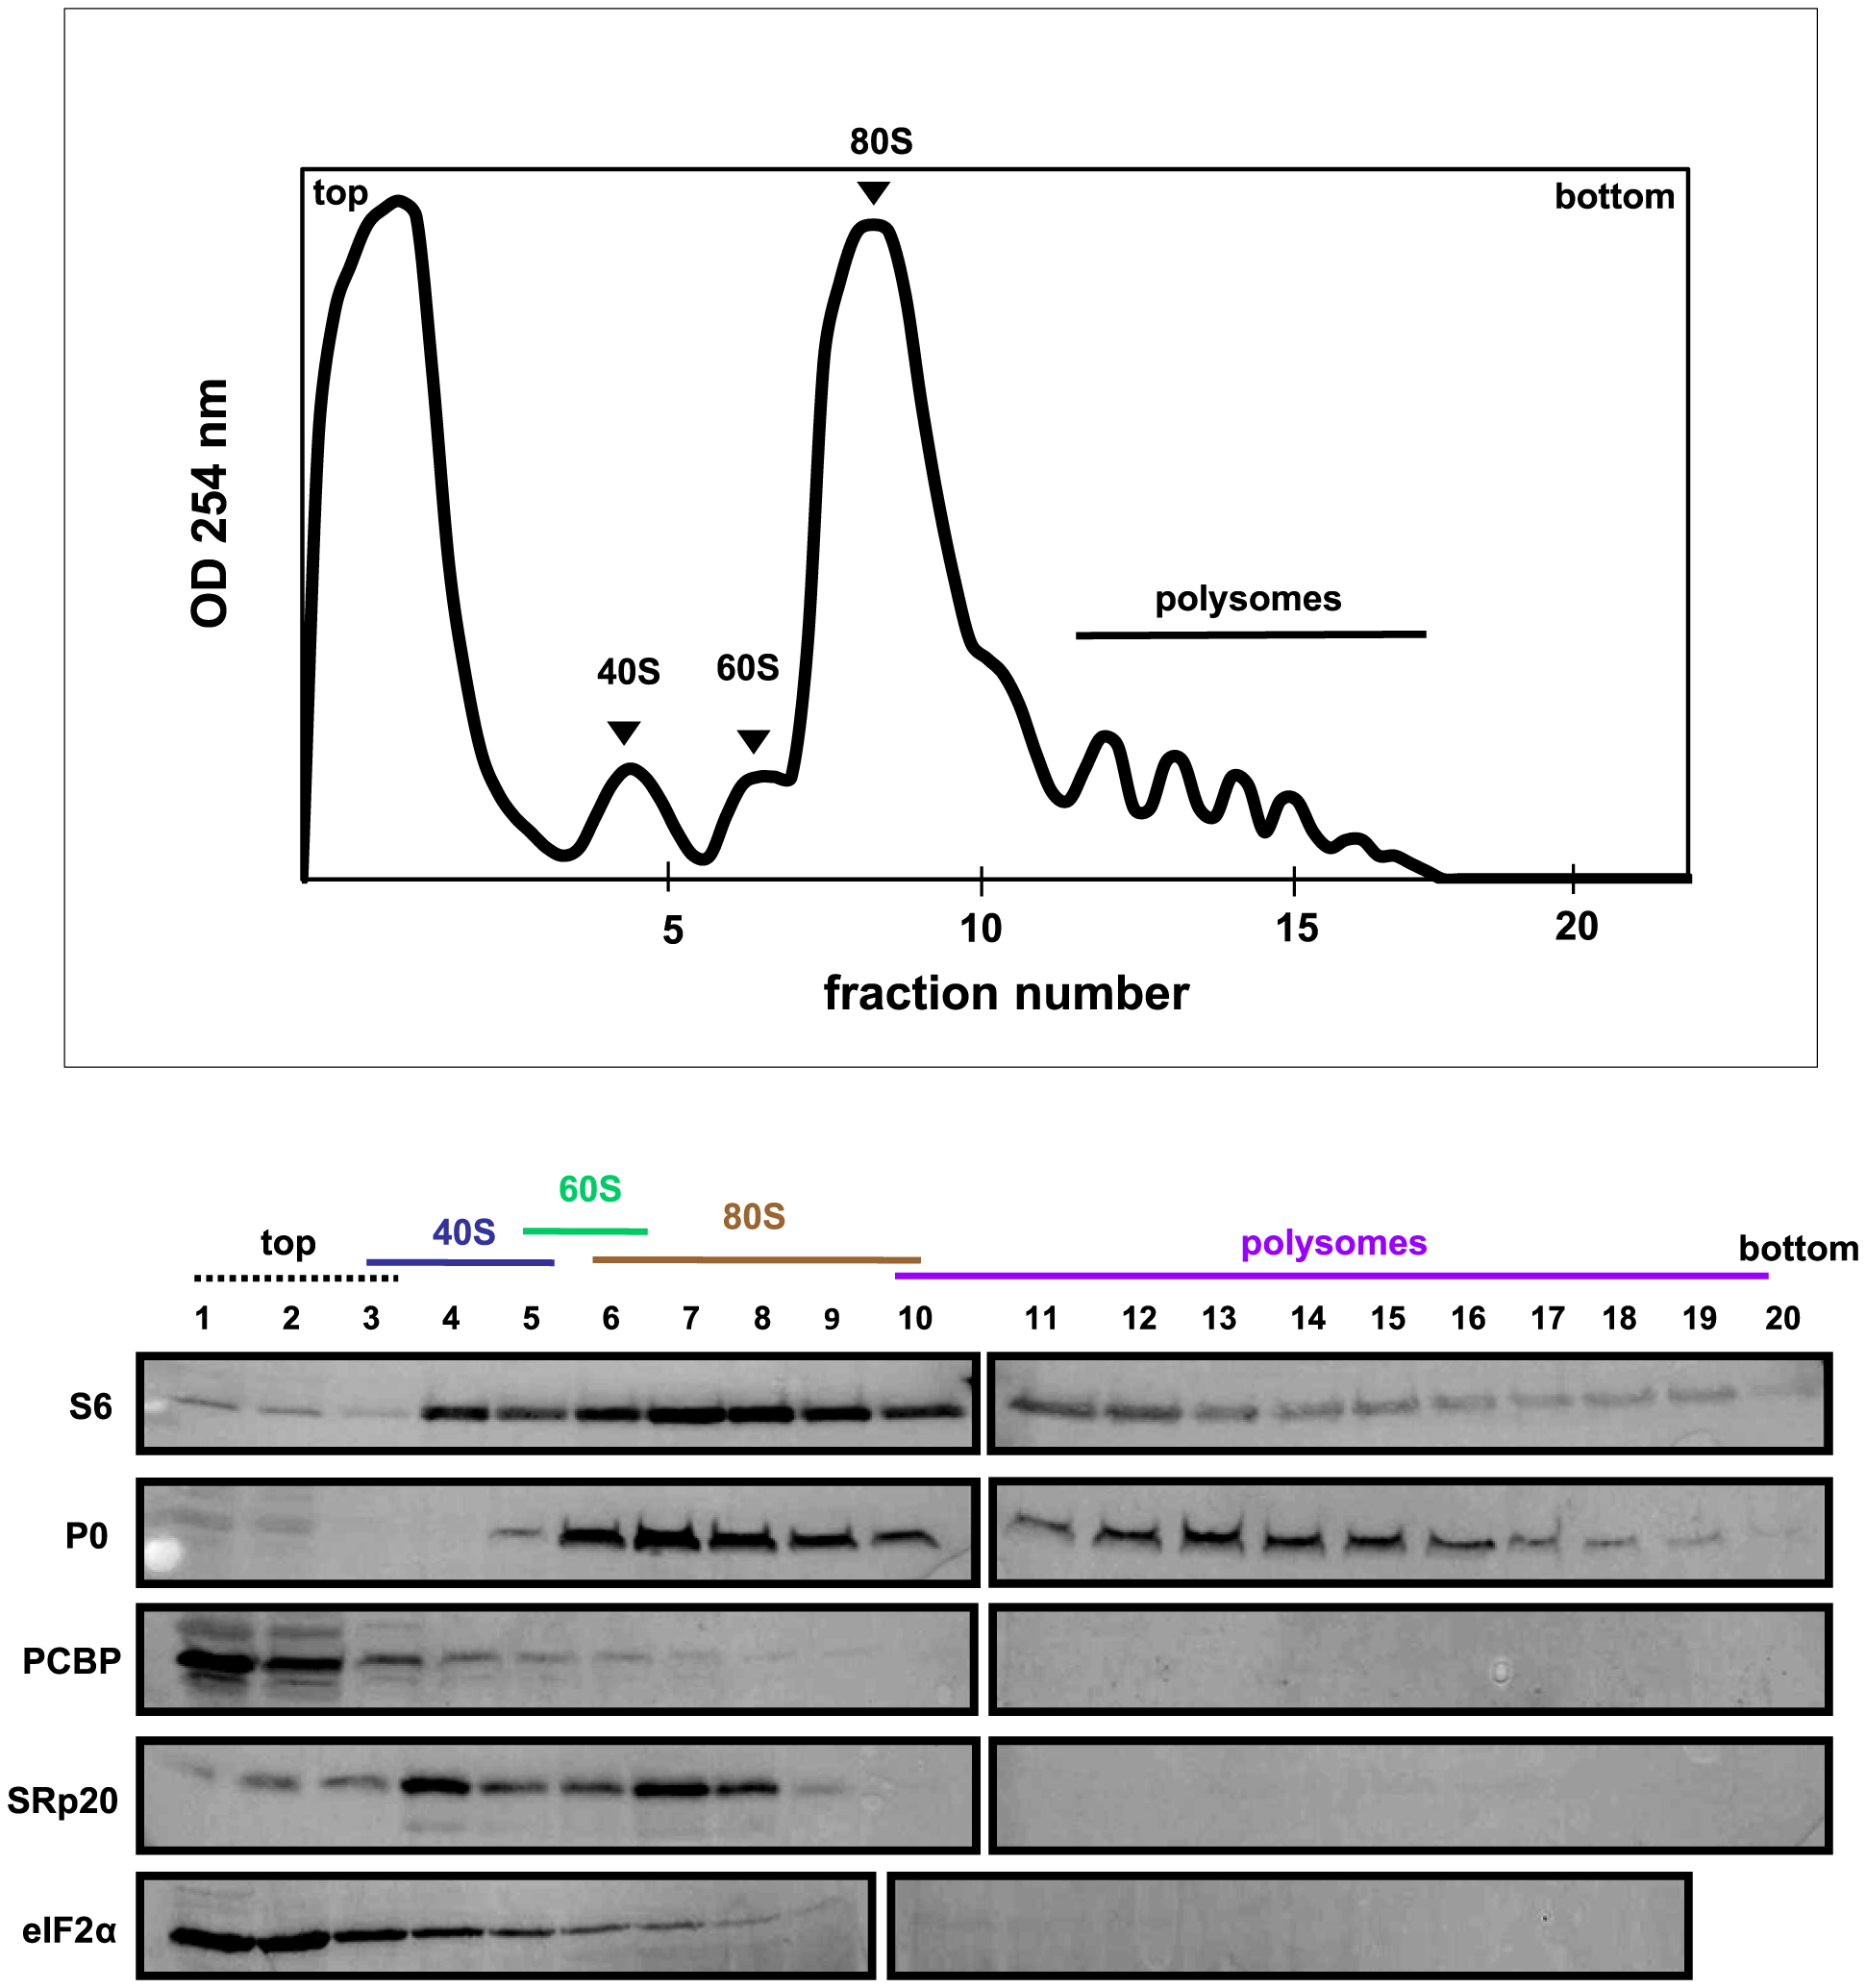 SRp20 and PCBP2 co-sedimentation with 40S ribosomal subunits in poliovirus-infected cells (2 hr post-infection).